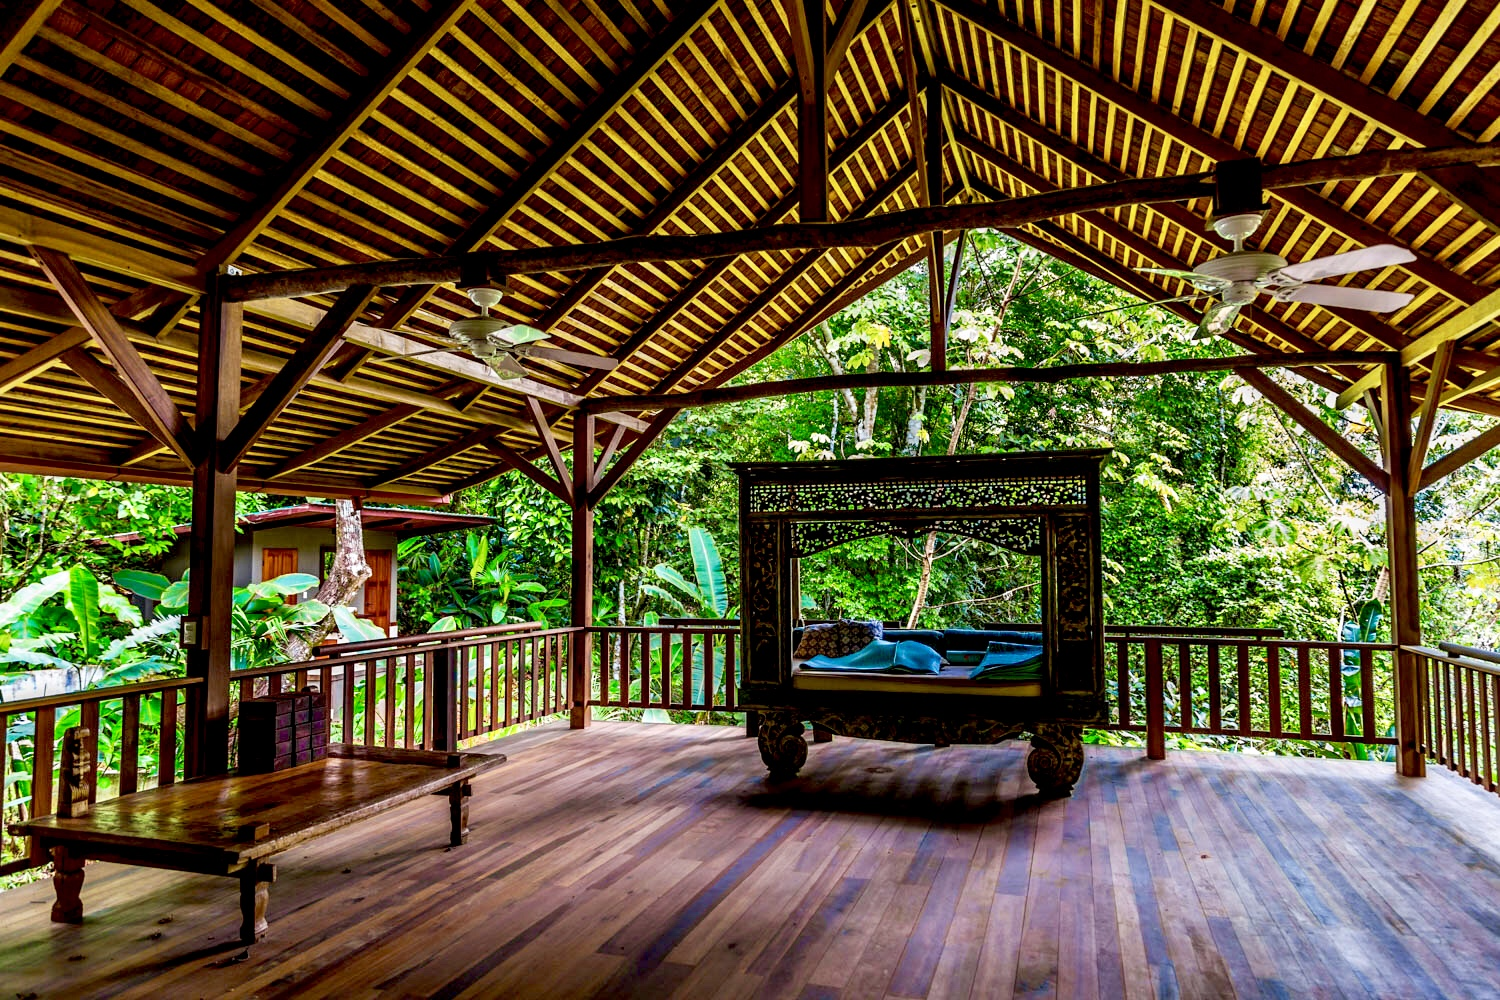 Our 1,575+ Sq Ft. MASTERS PAVILLION is the center piece of the property. Built into the trees at more than 100 feet in the air, reality is suspended here. A neutral, warm, inviting environment for exploration and creativity. Jungle paths connect all 20 acres like arteries of a heart to the heart center of Imiloa.